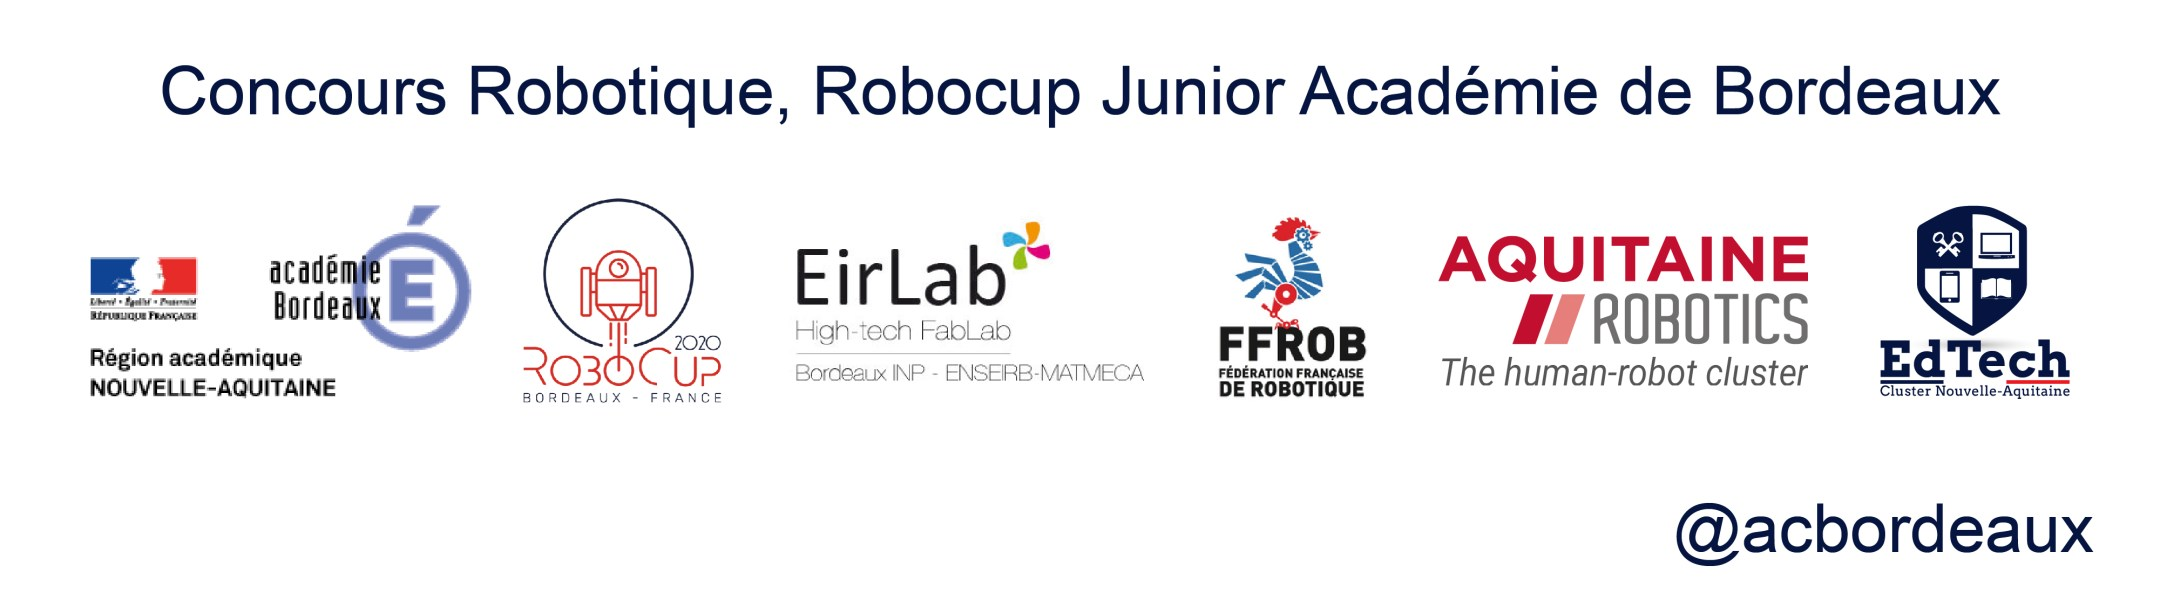 EdTech Robocup Junior Academie Bordeaux